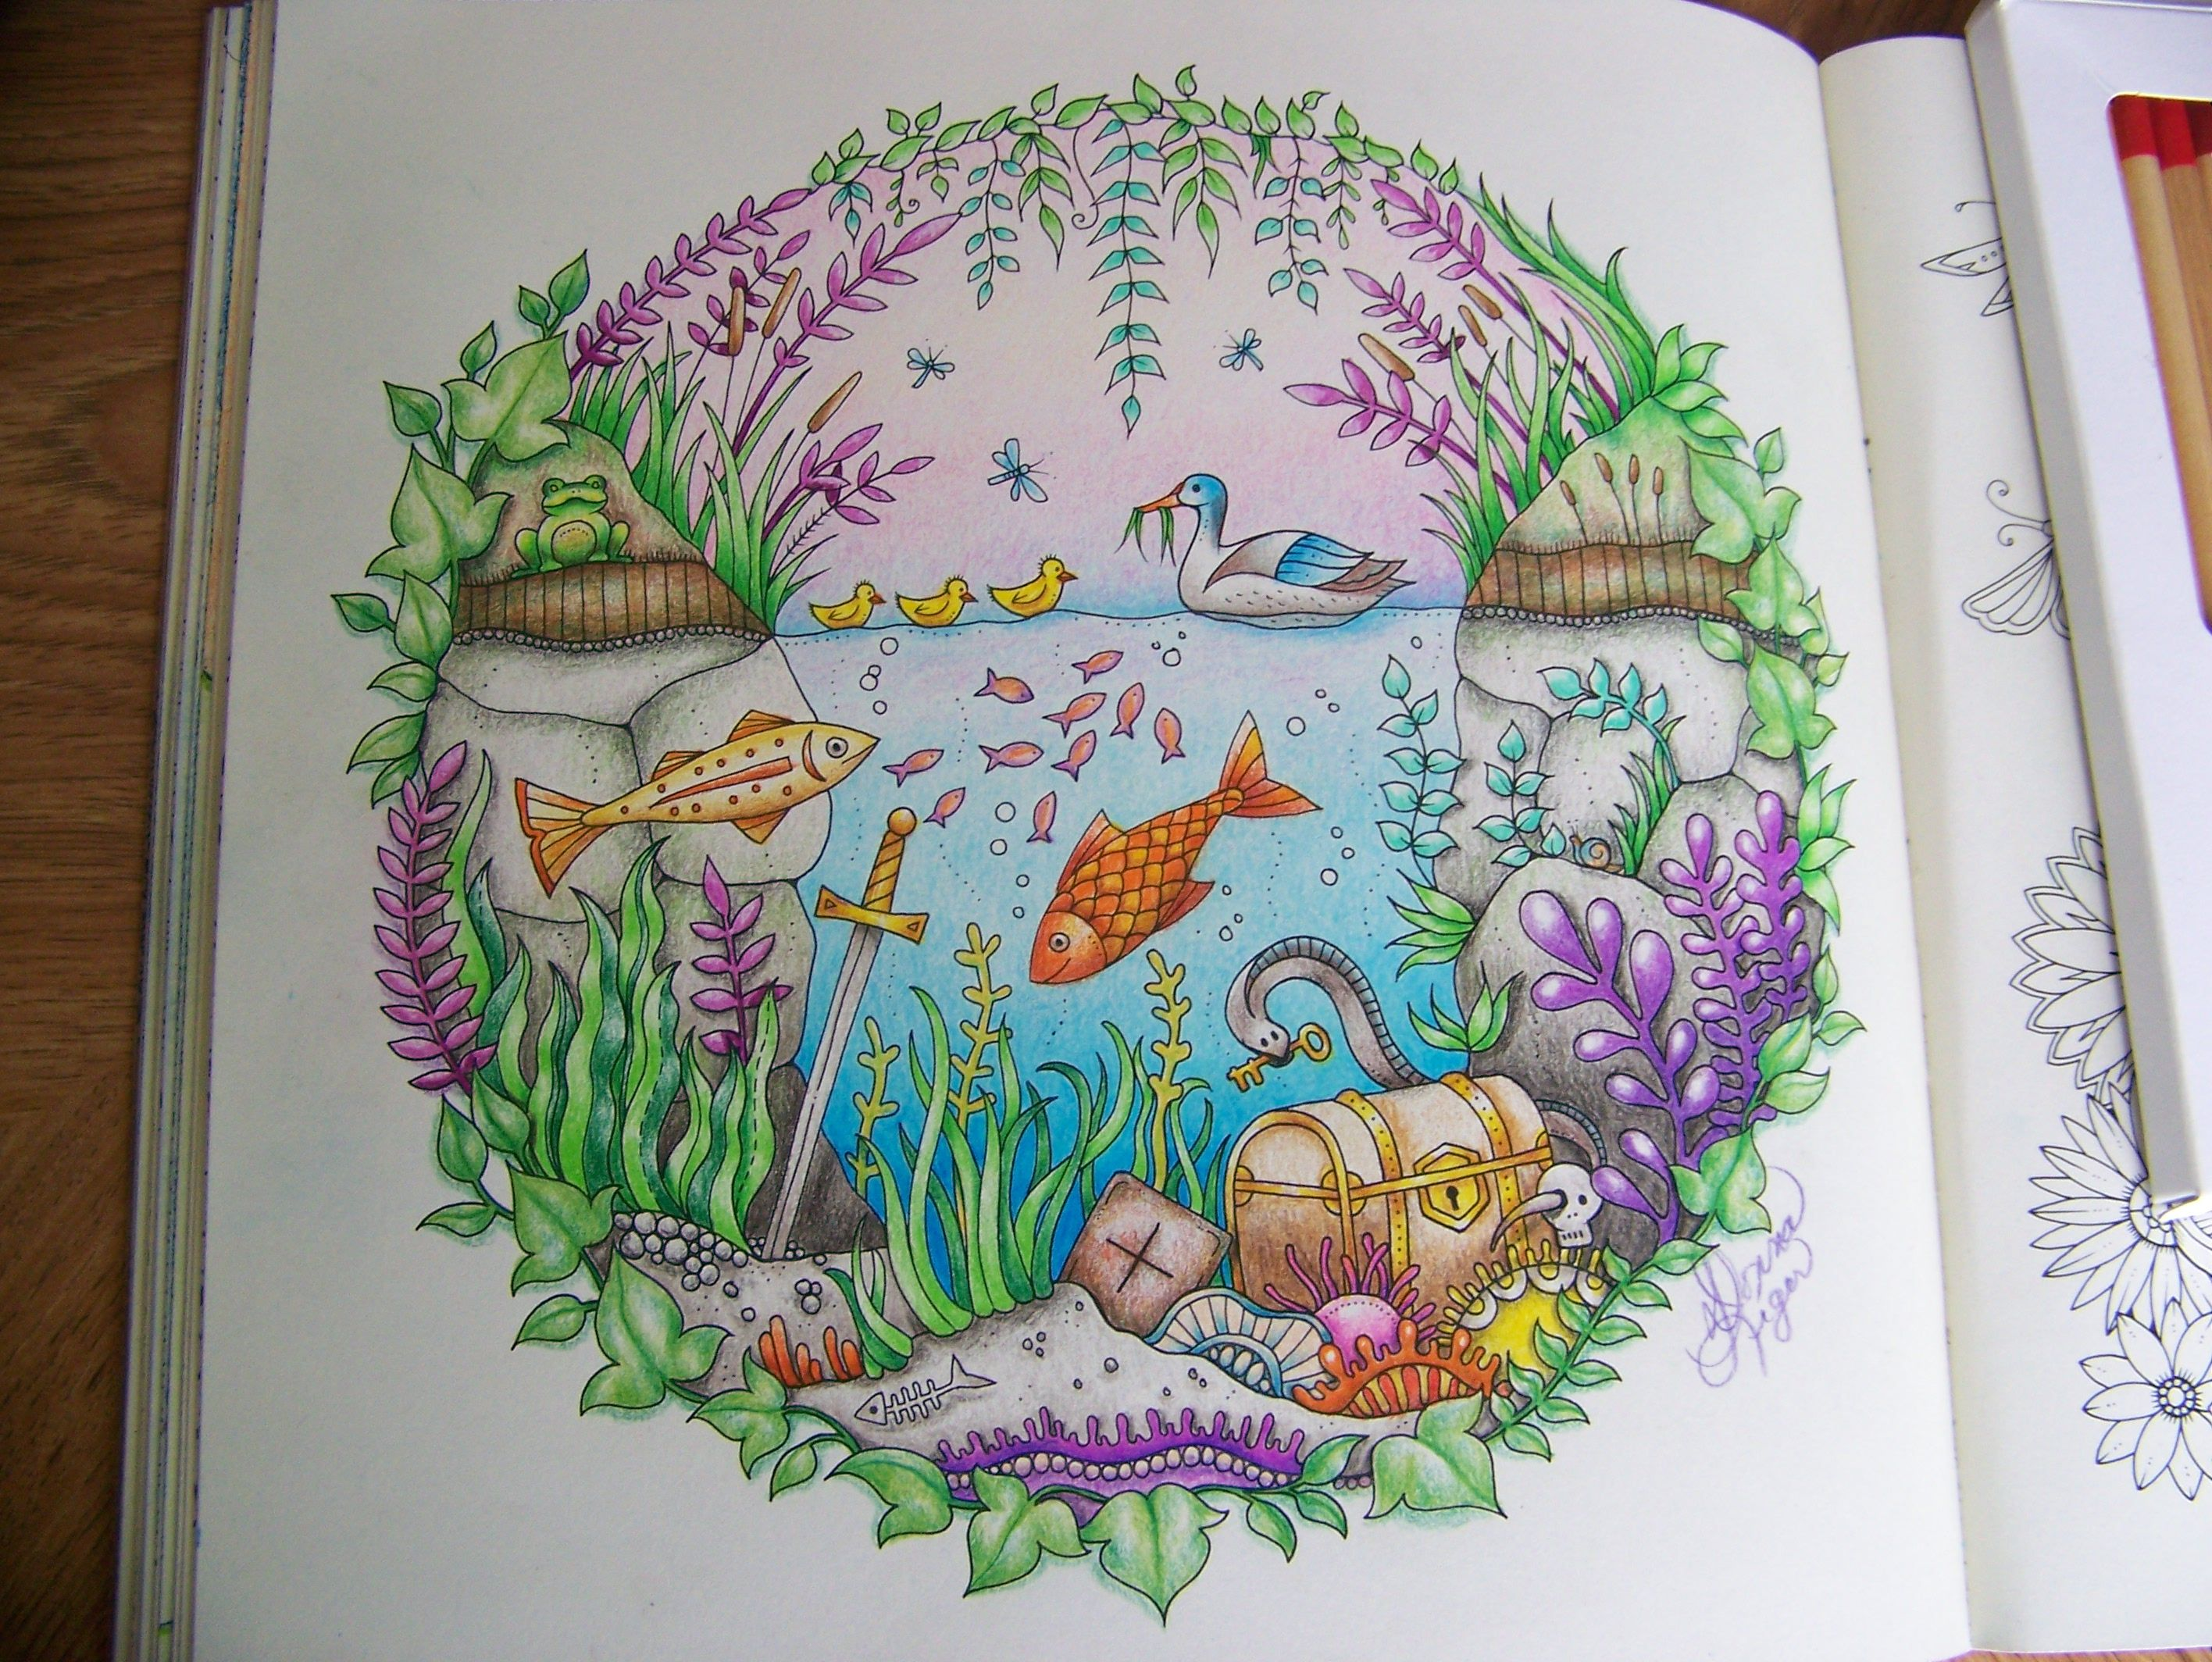 The enchanted forest coloring book uk - From The Enchanted Forest Johanna Basford Adult Coloring Book Duck Treasure